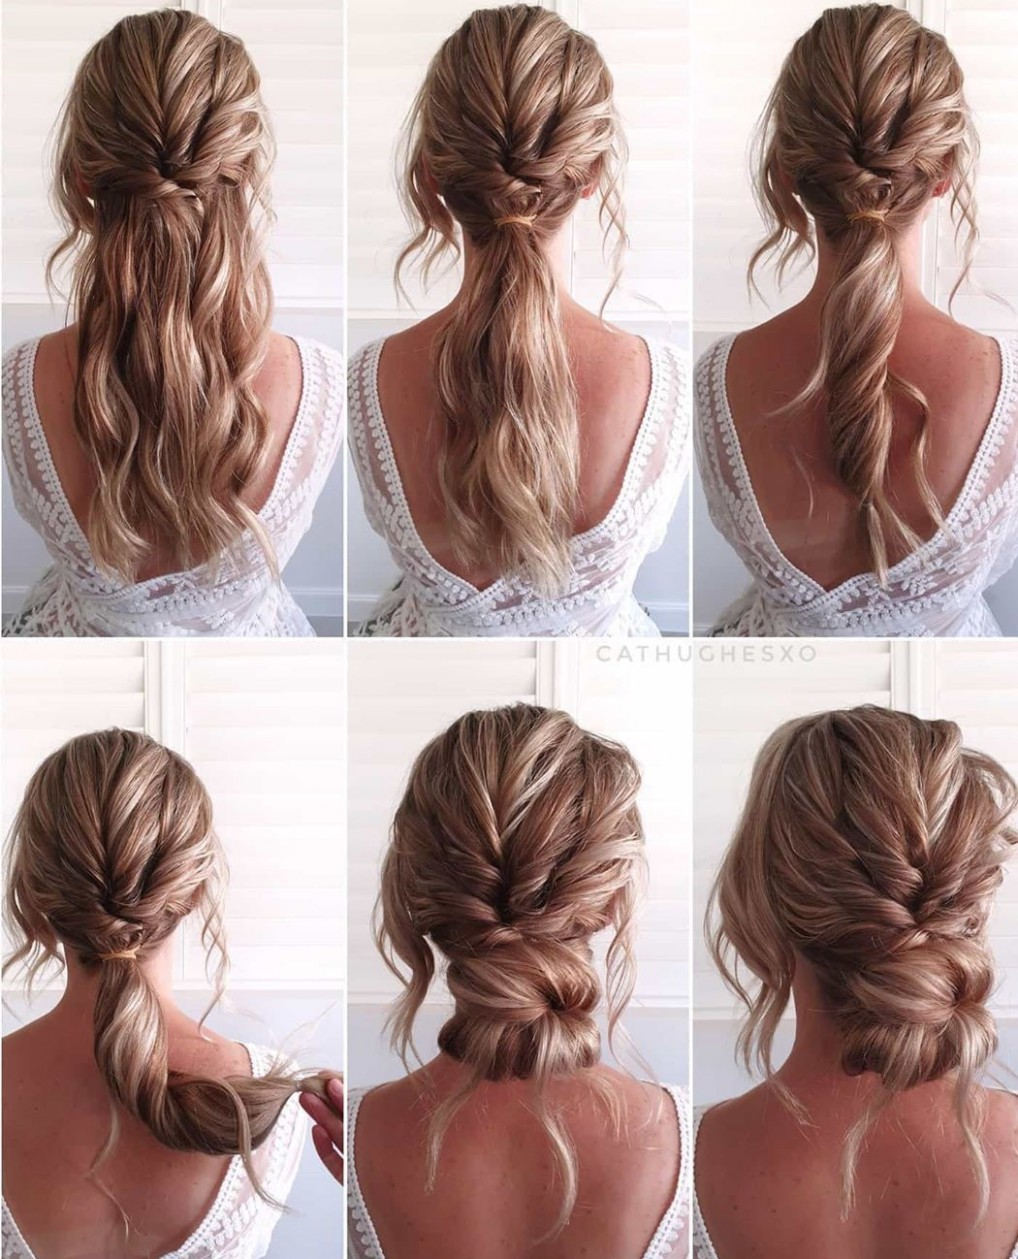 12 Easy Hairstyles For Long Hair With Simple Instructions Hair Easy Hairstyles For Long Curly Hair